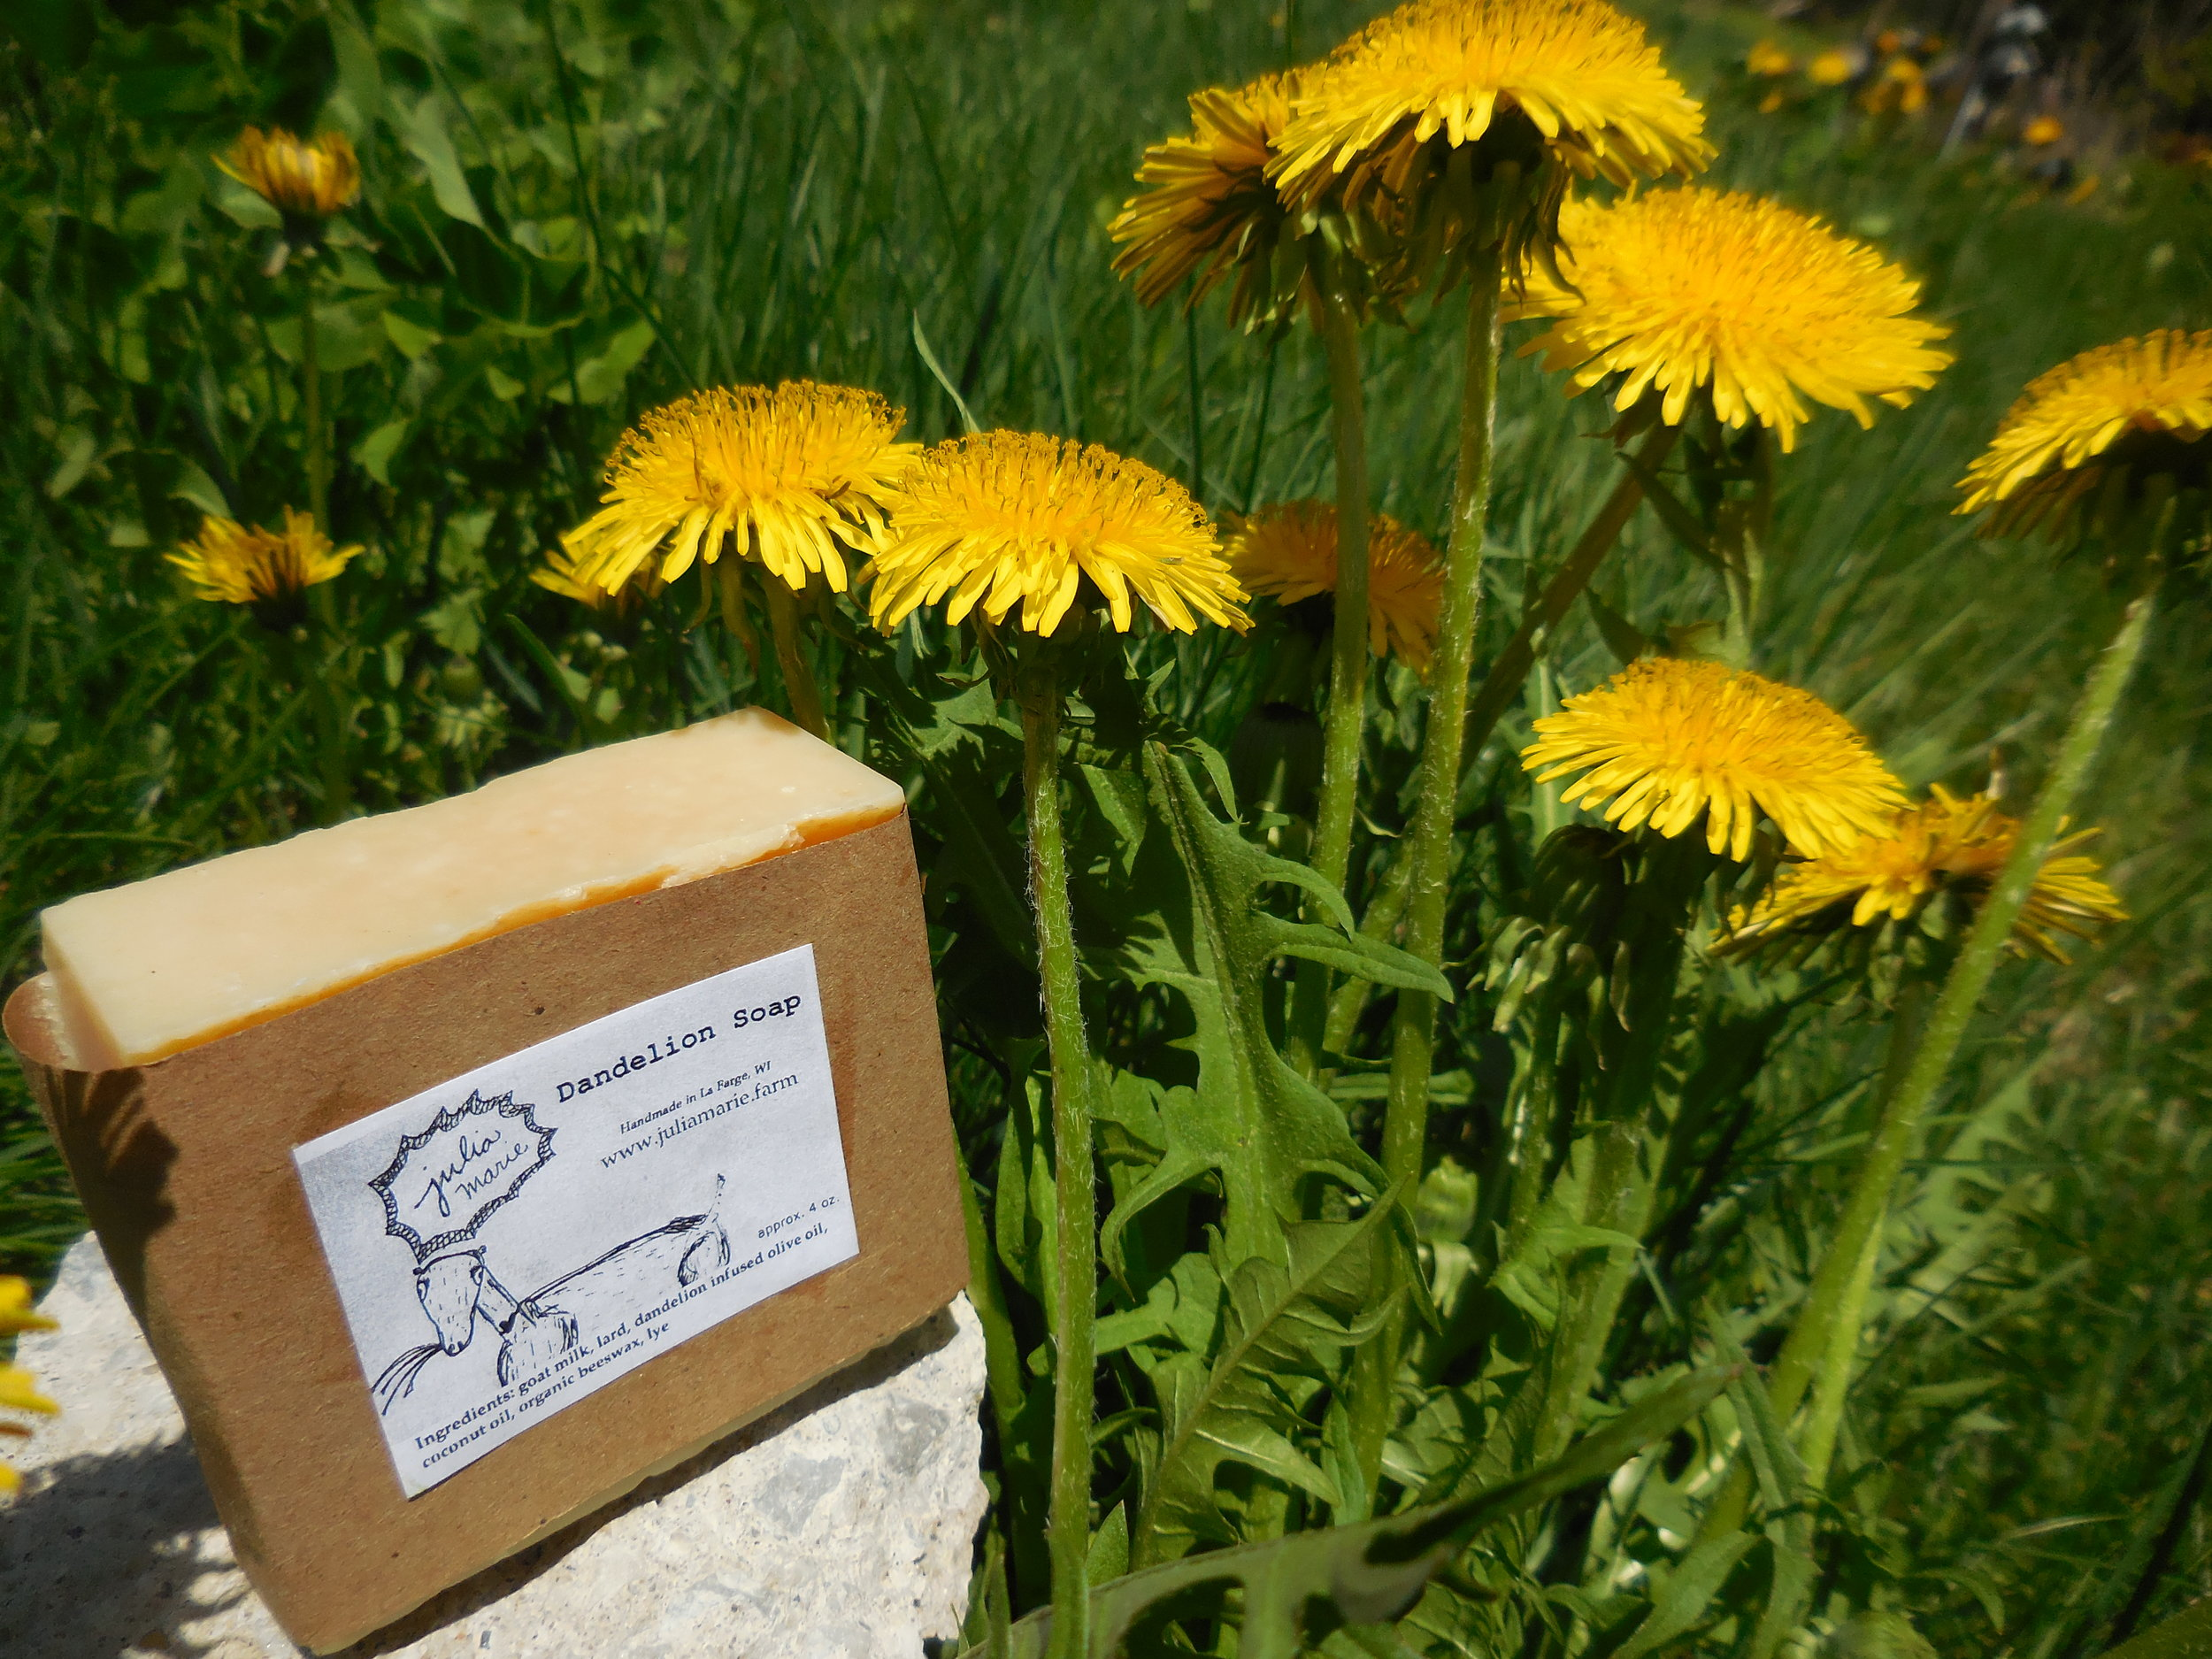 Dandelion Soap - spring sunrays trapped in this soap, ready for a long winter's night